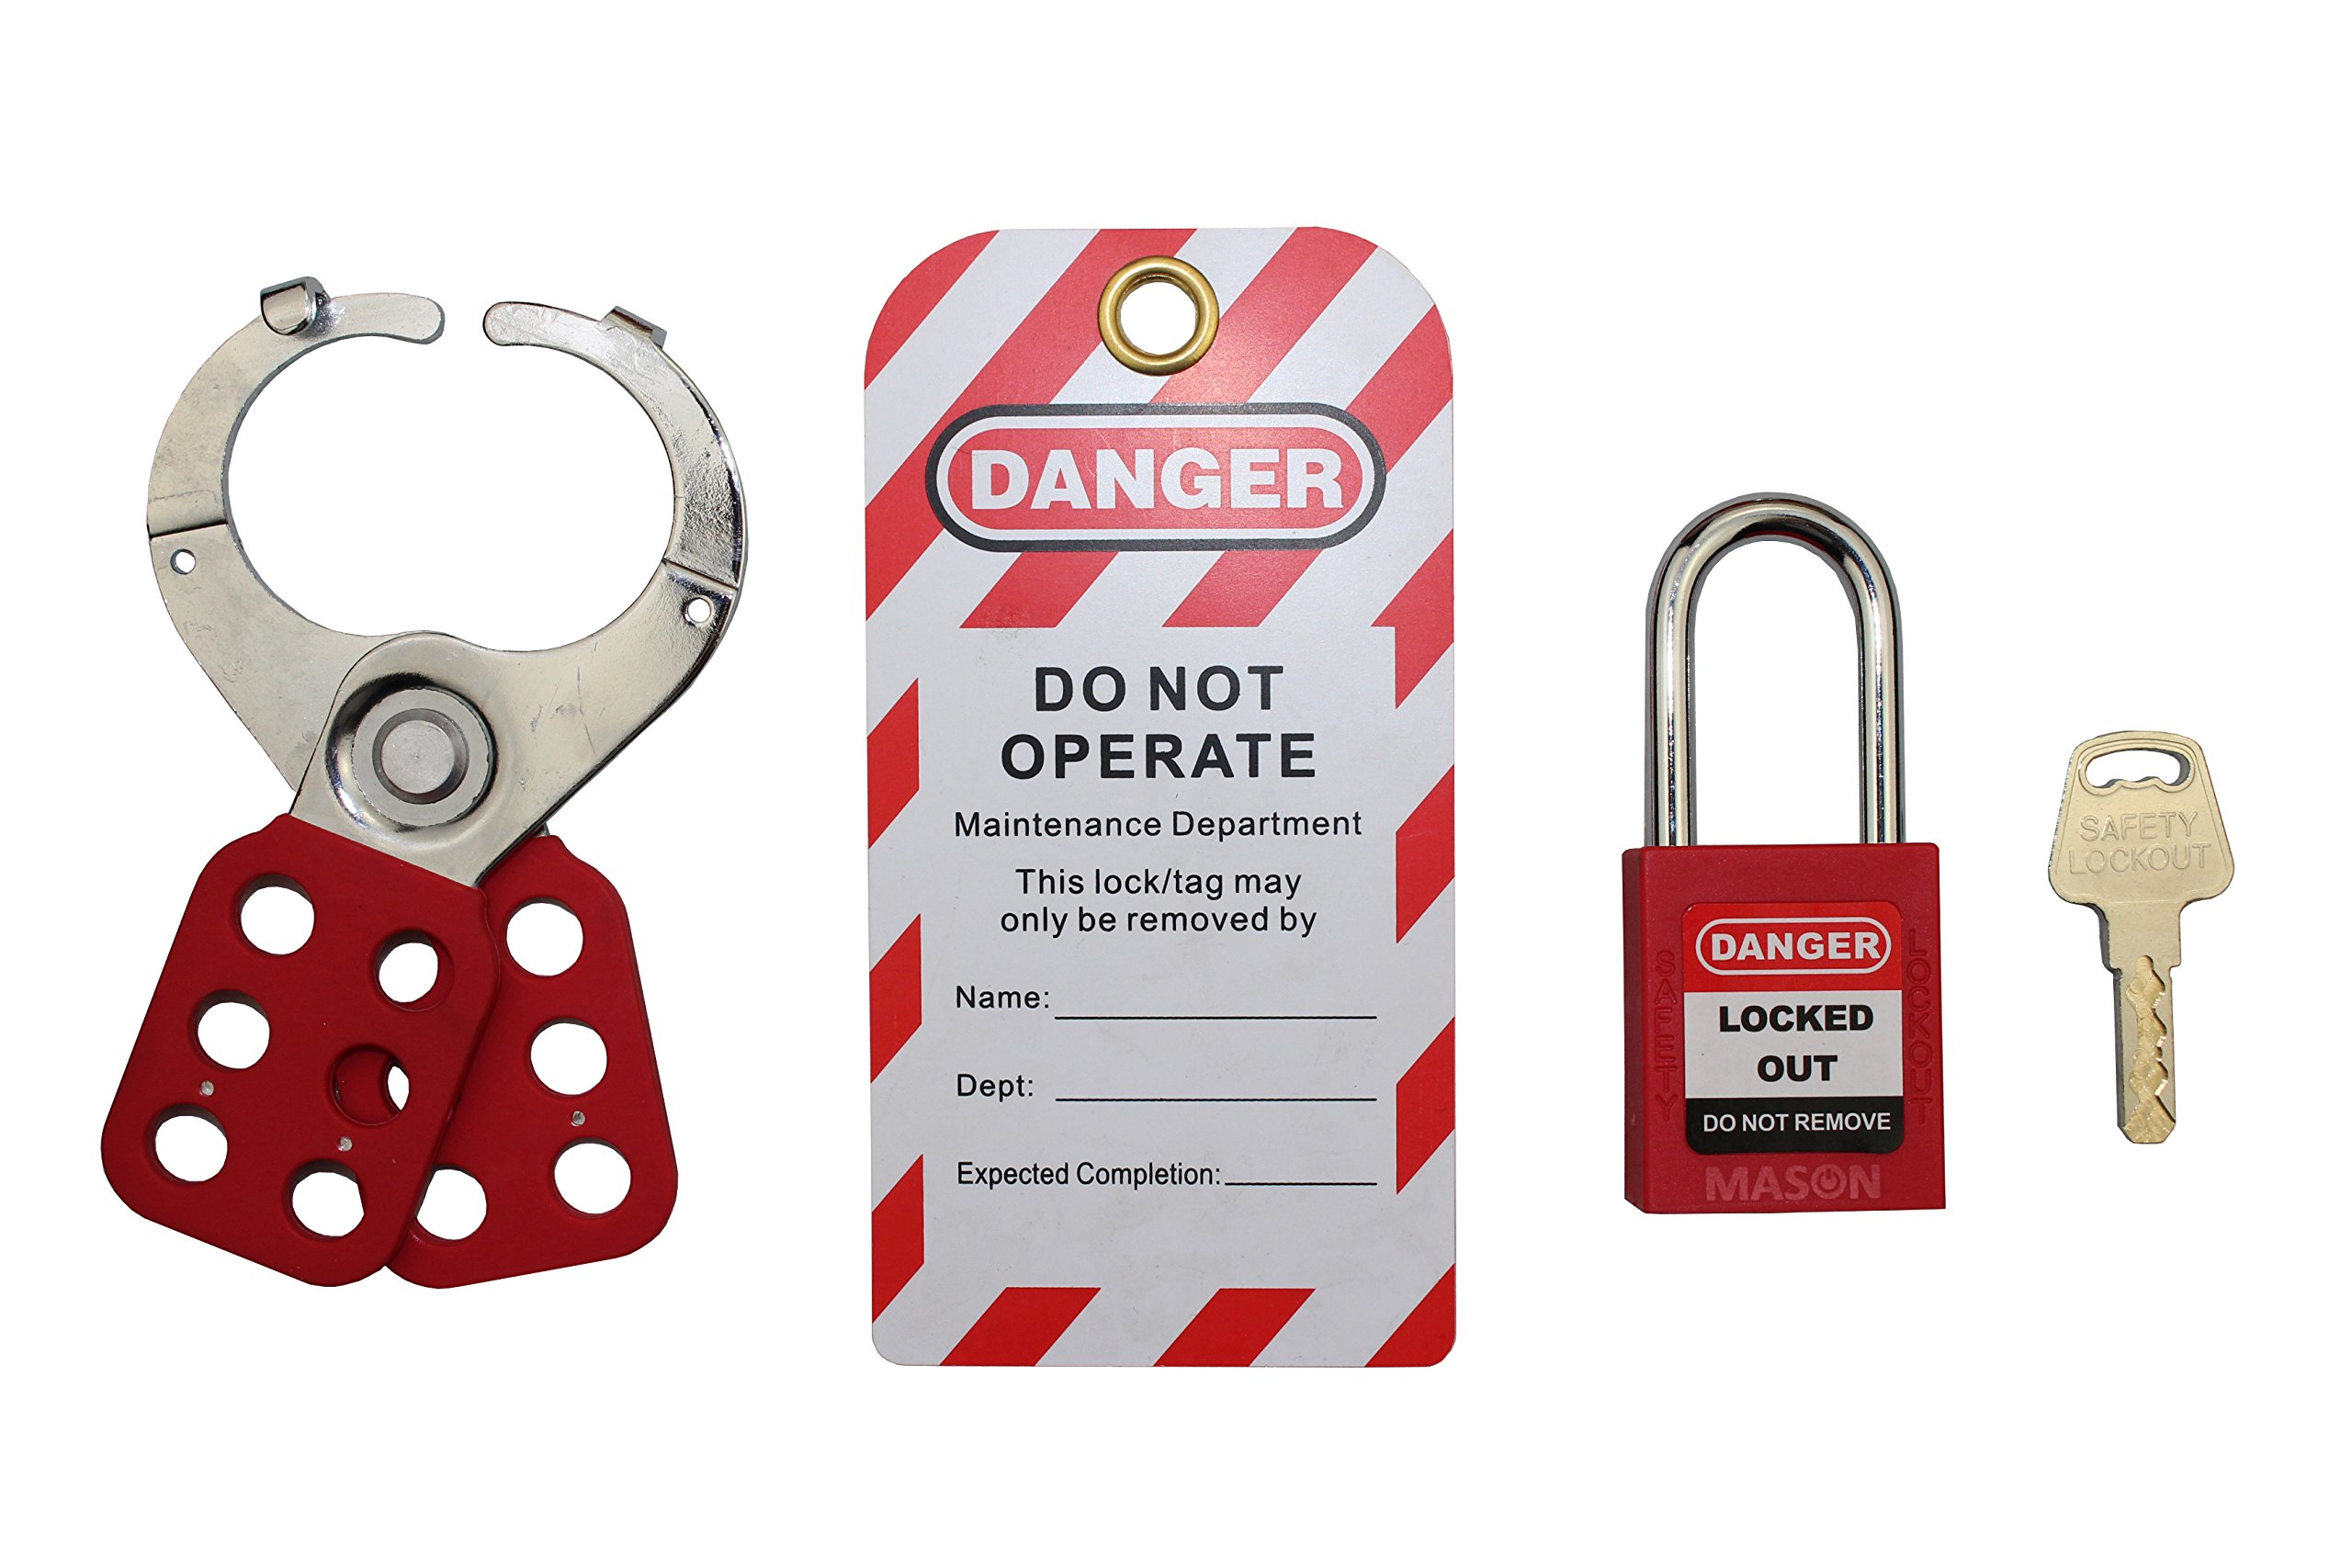 Mason Lockout Tagout Personal Starter Kit, Red Keyed Differently